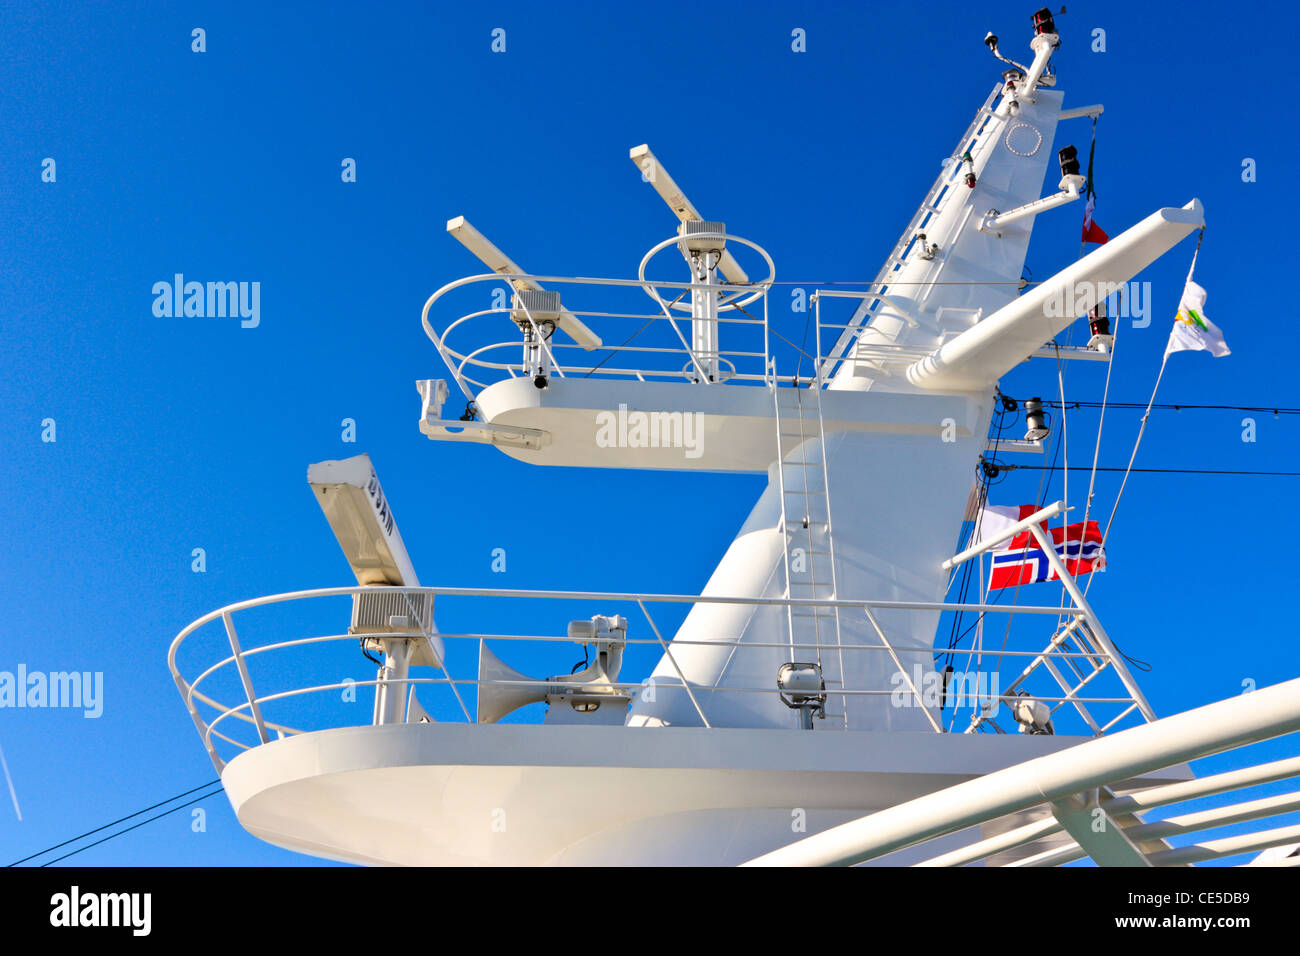 boat radio control with Stock Photo Radar Mast Of A Ship 43146189 on Cheap Electric Toy Car additionally Photo gallery 69 besides Secret Decoder Ring moreover Accessories Parts besides Zv6500.